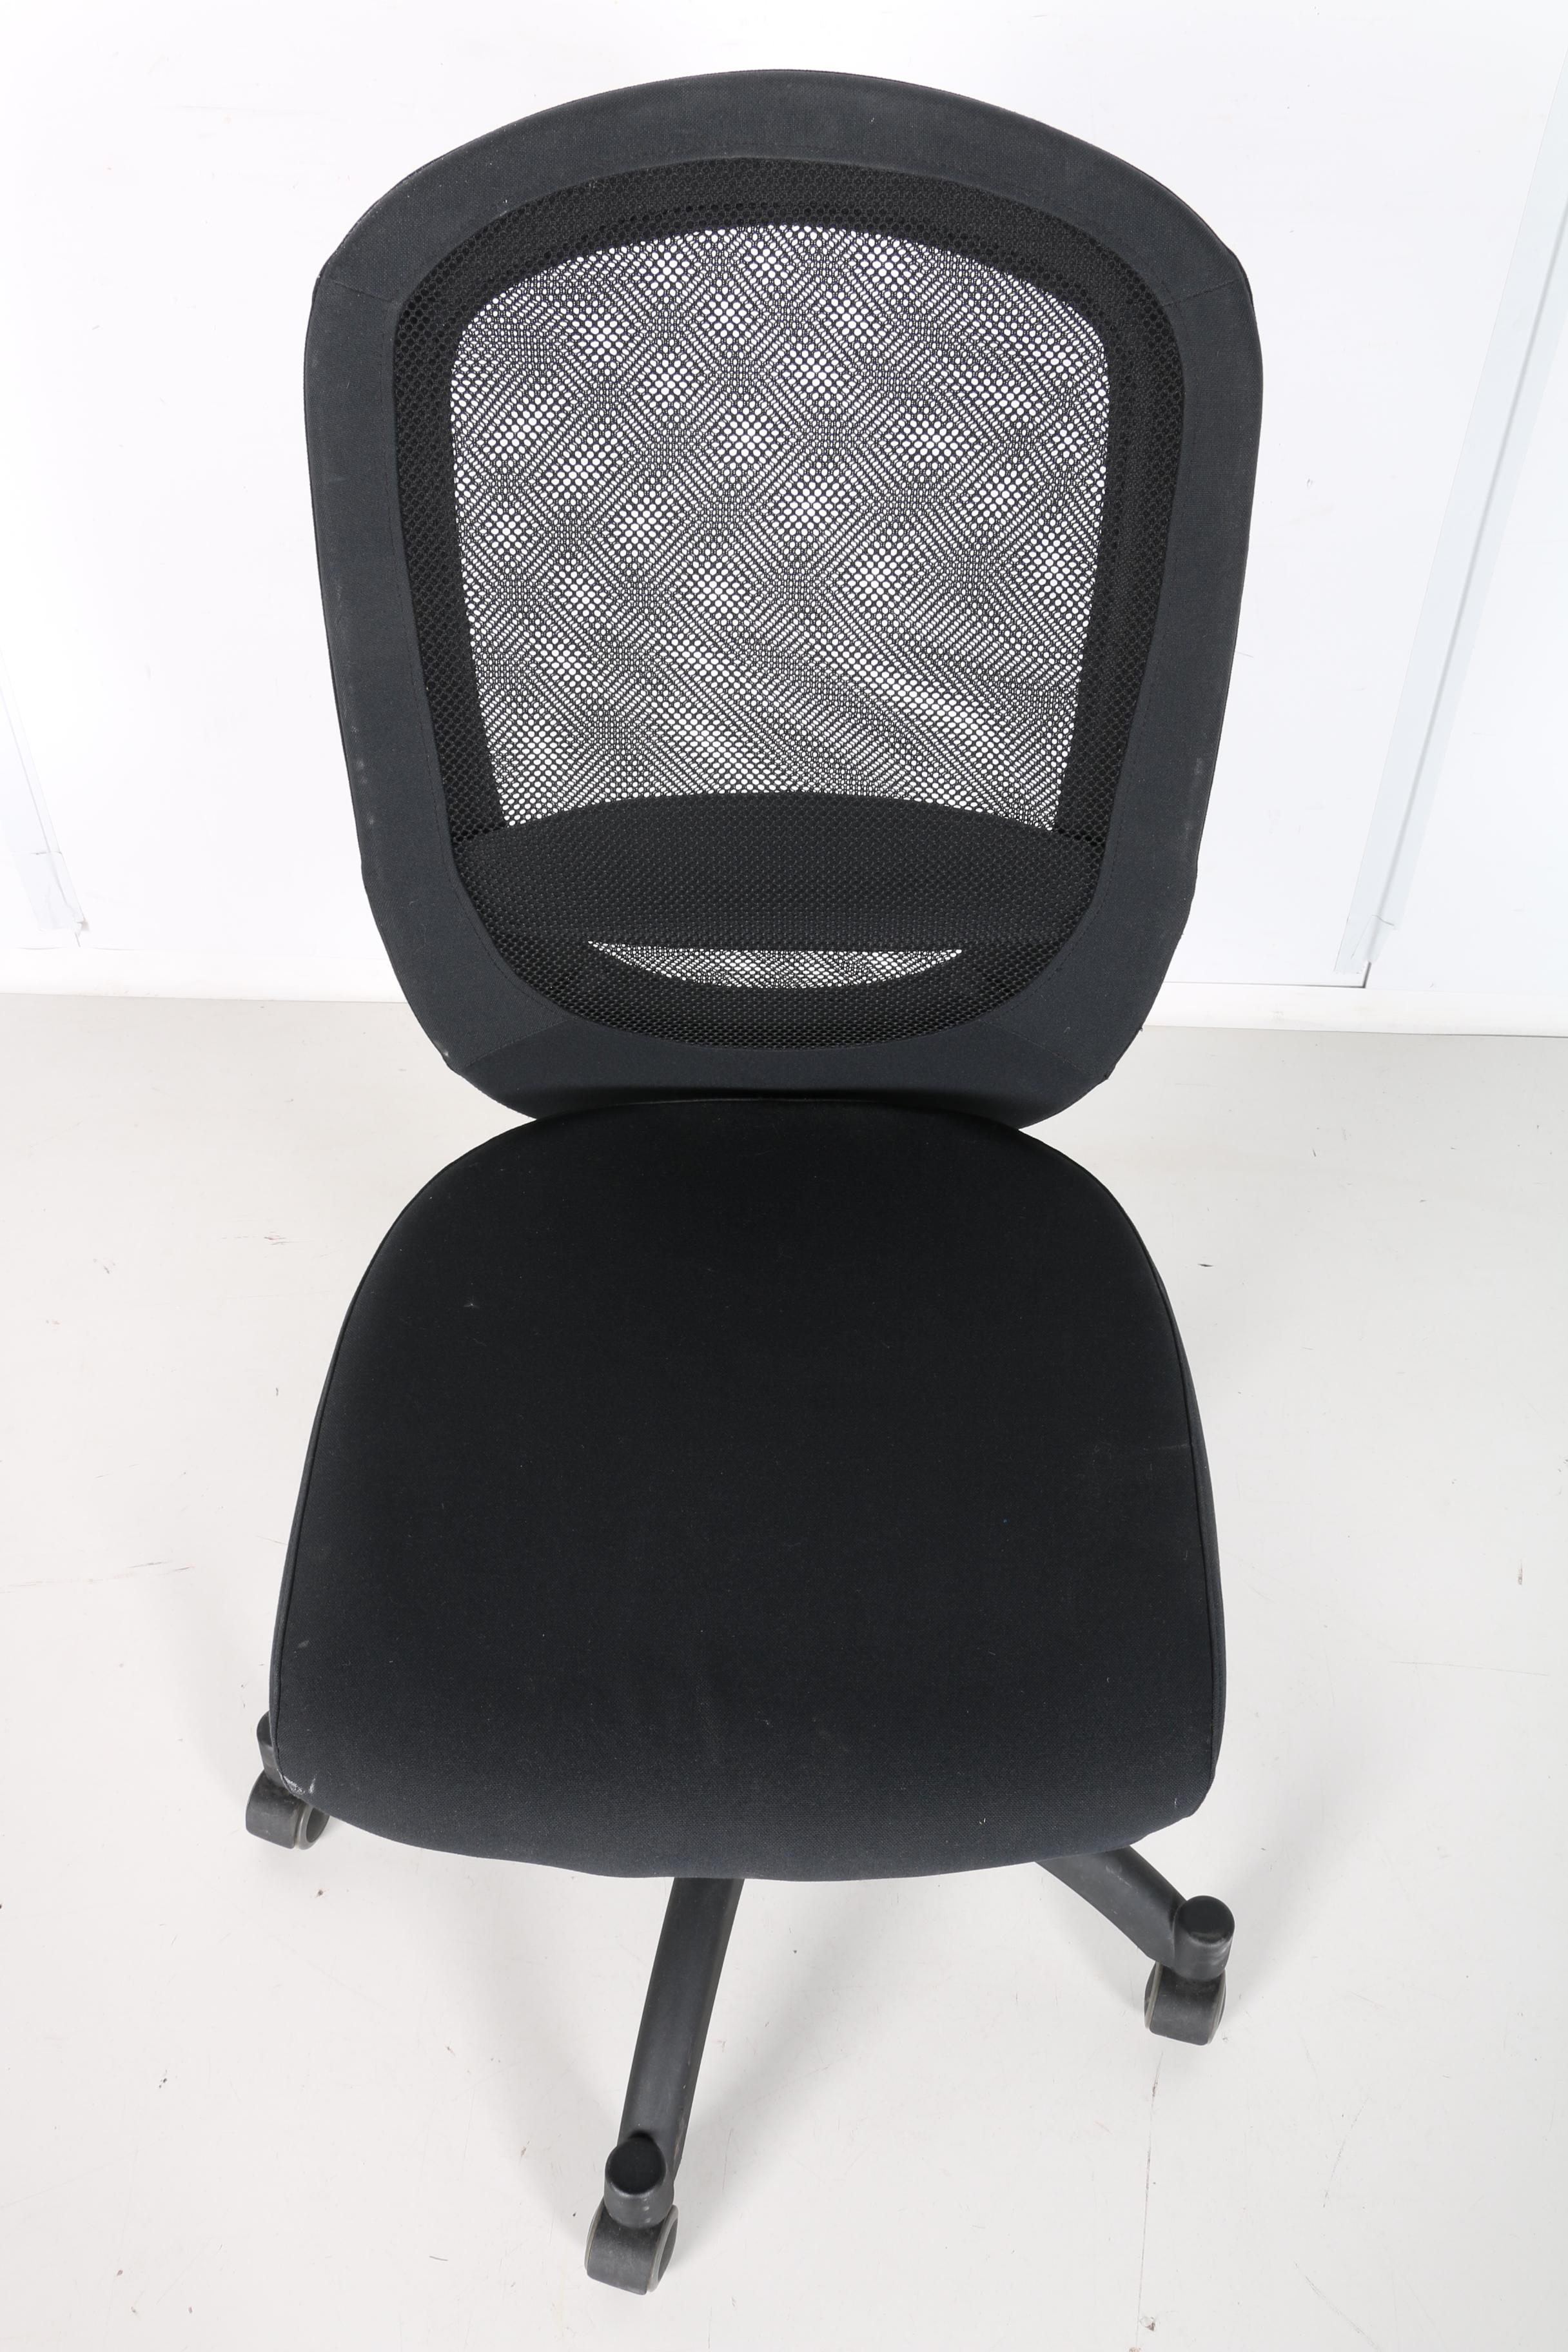 ikea rolling chair dorm room chairs contemporary quotvilgot quot office by ebth